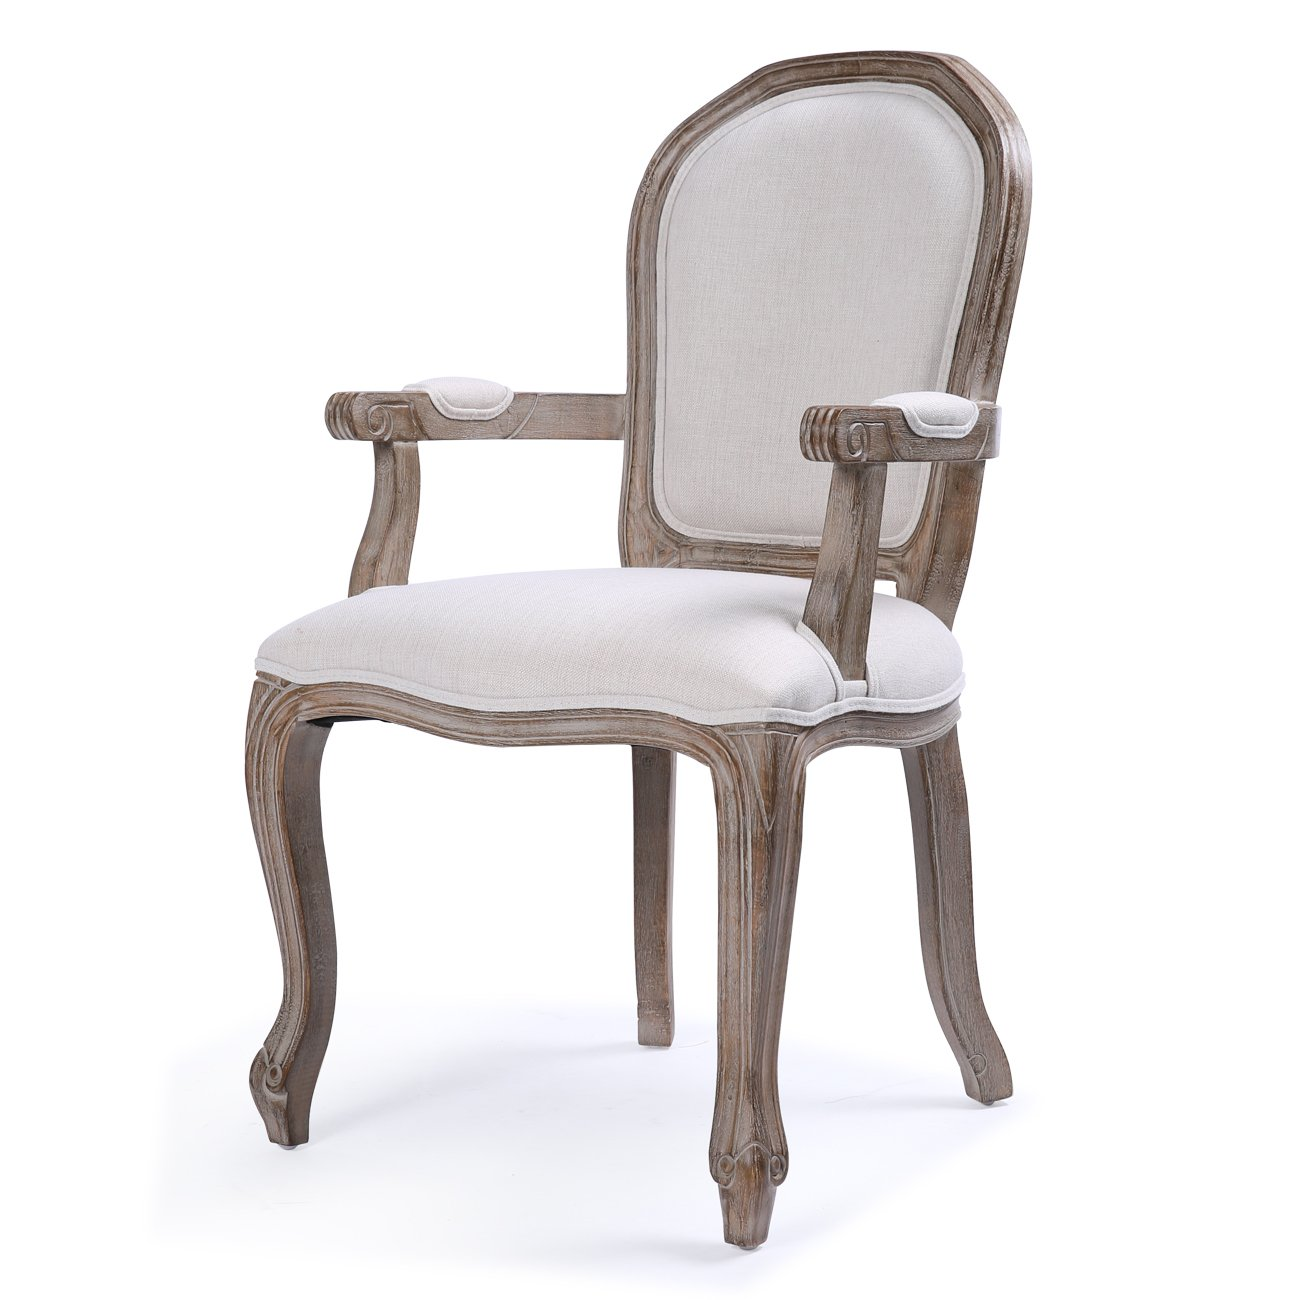 Belleze Classic Dining Room Chair Accent Elegant Linen Side High Back w/Padded Armrest Solid Wood Legs, Beige by Belleze